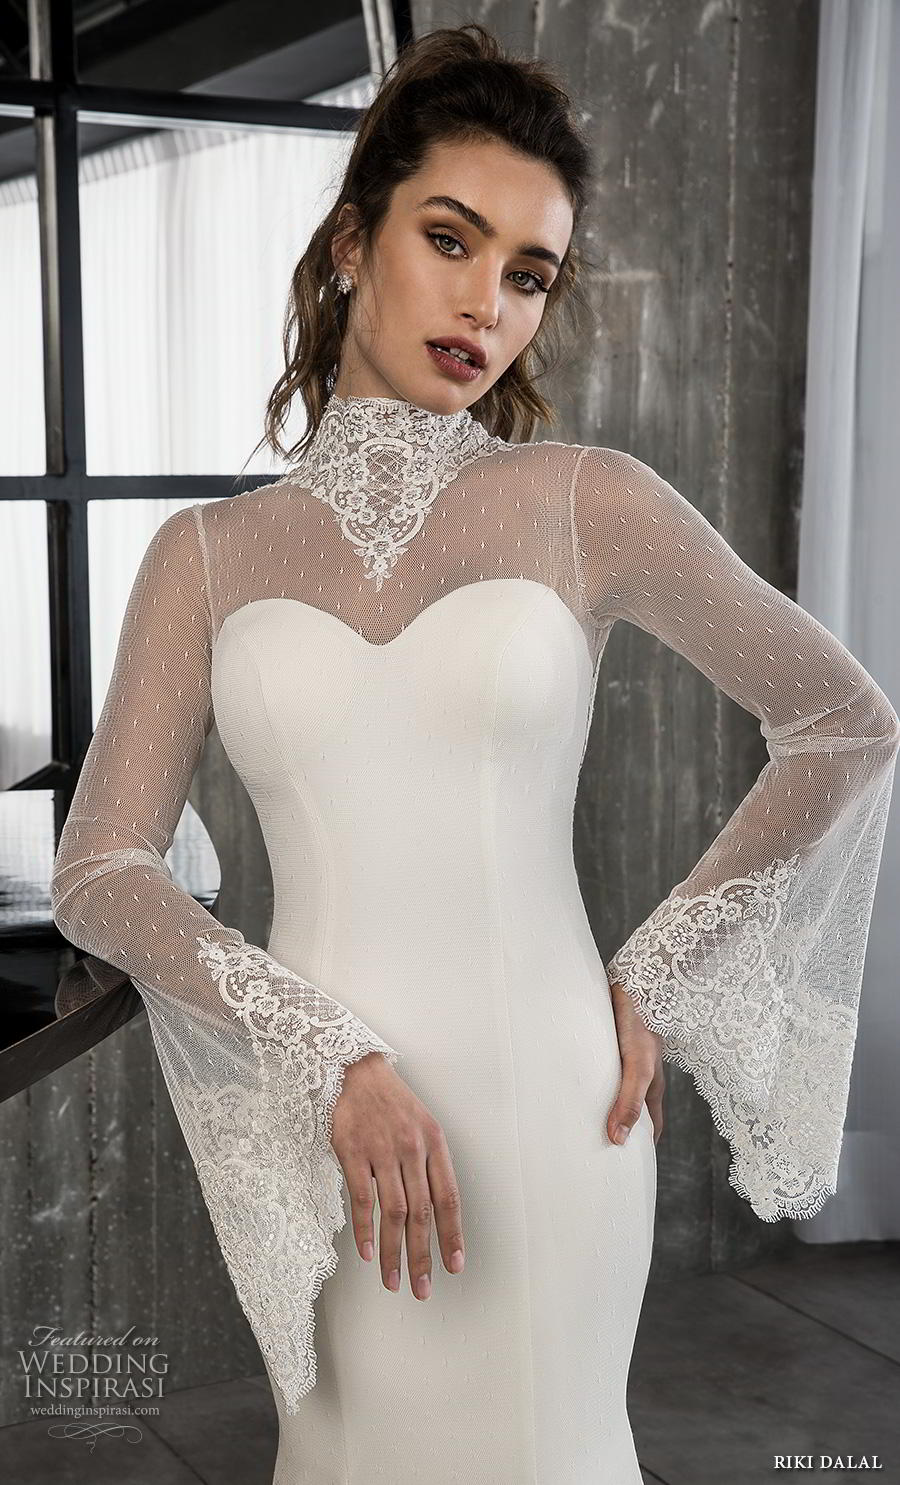 riki dalal 2018 glamour bridal long bell sleeves illusion high neck sweetheart neckline simple elegant fit and flare wedding dress keyhole back chapel train (11) zv